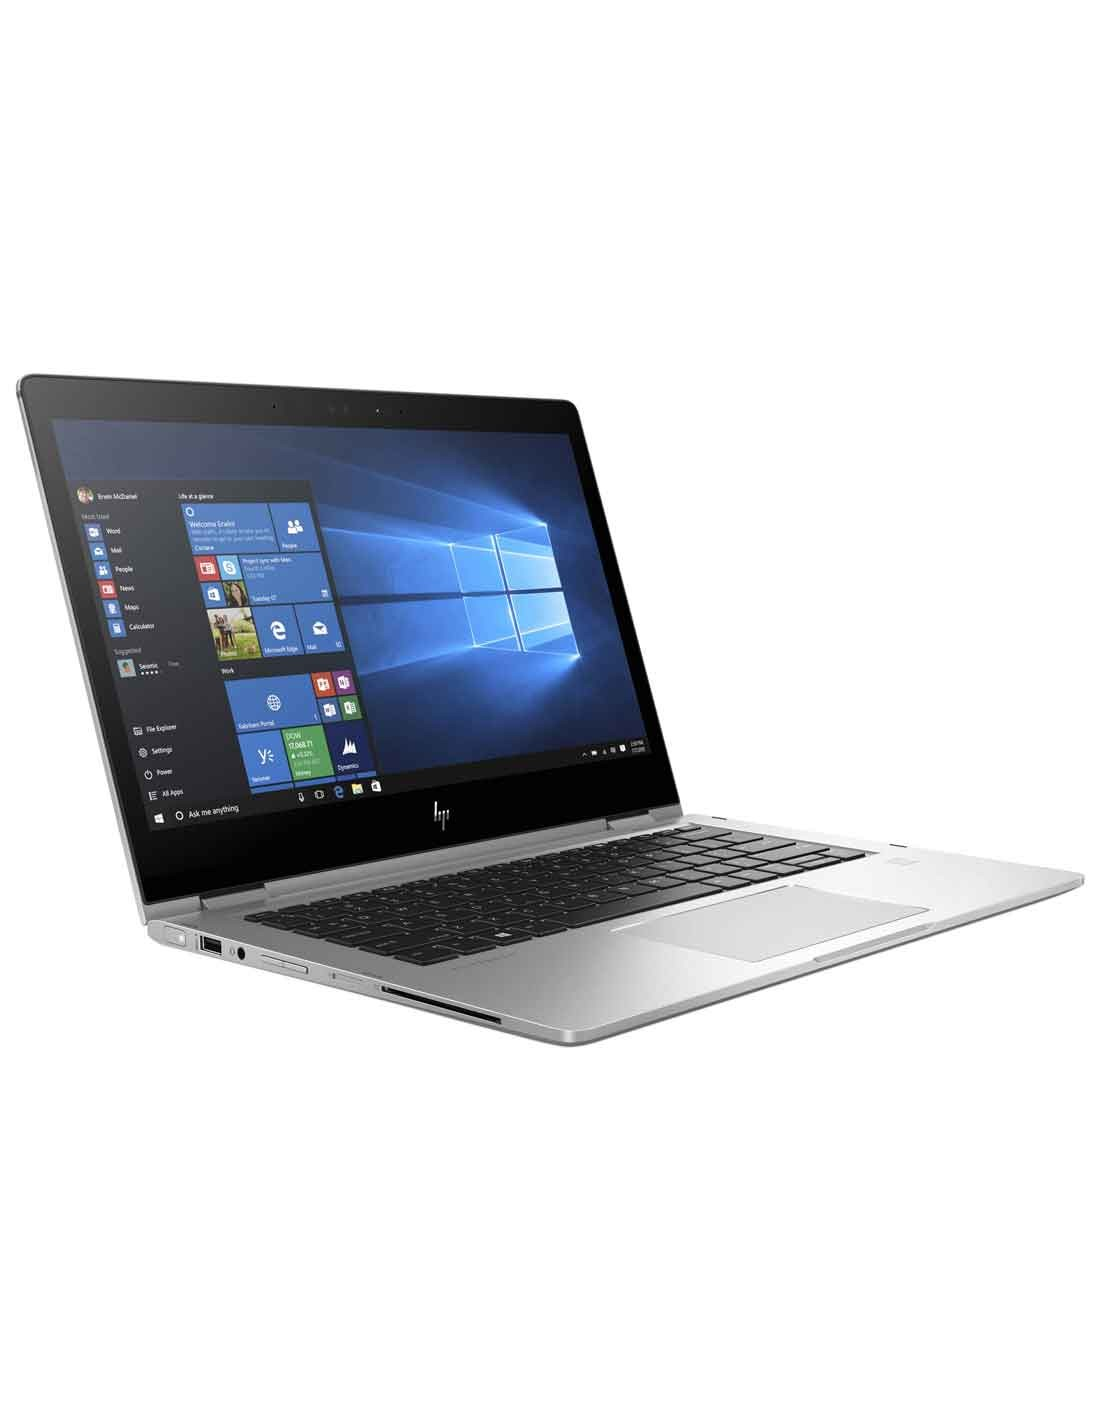 HP EliteBook x360 1030 G2 images and photos